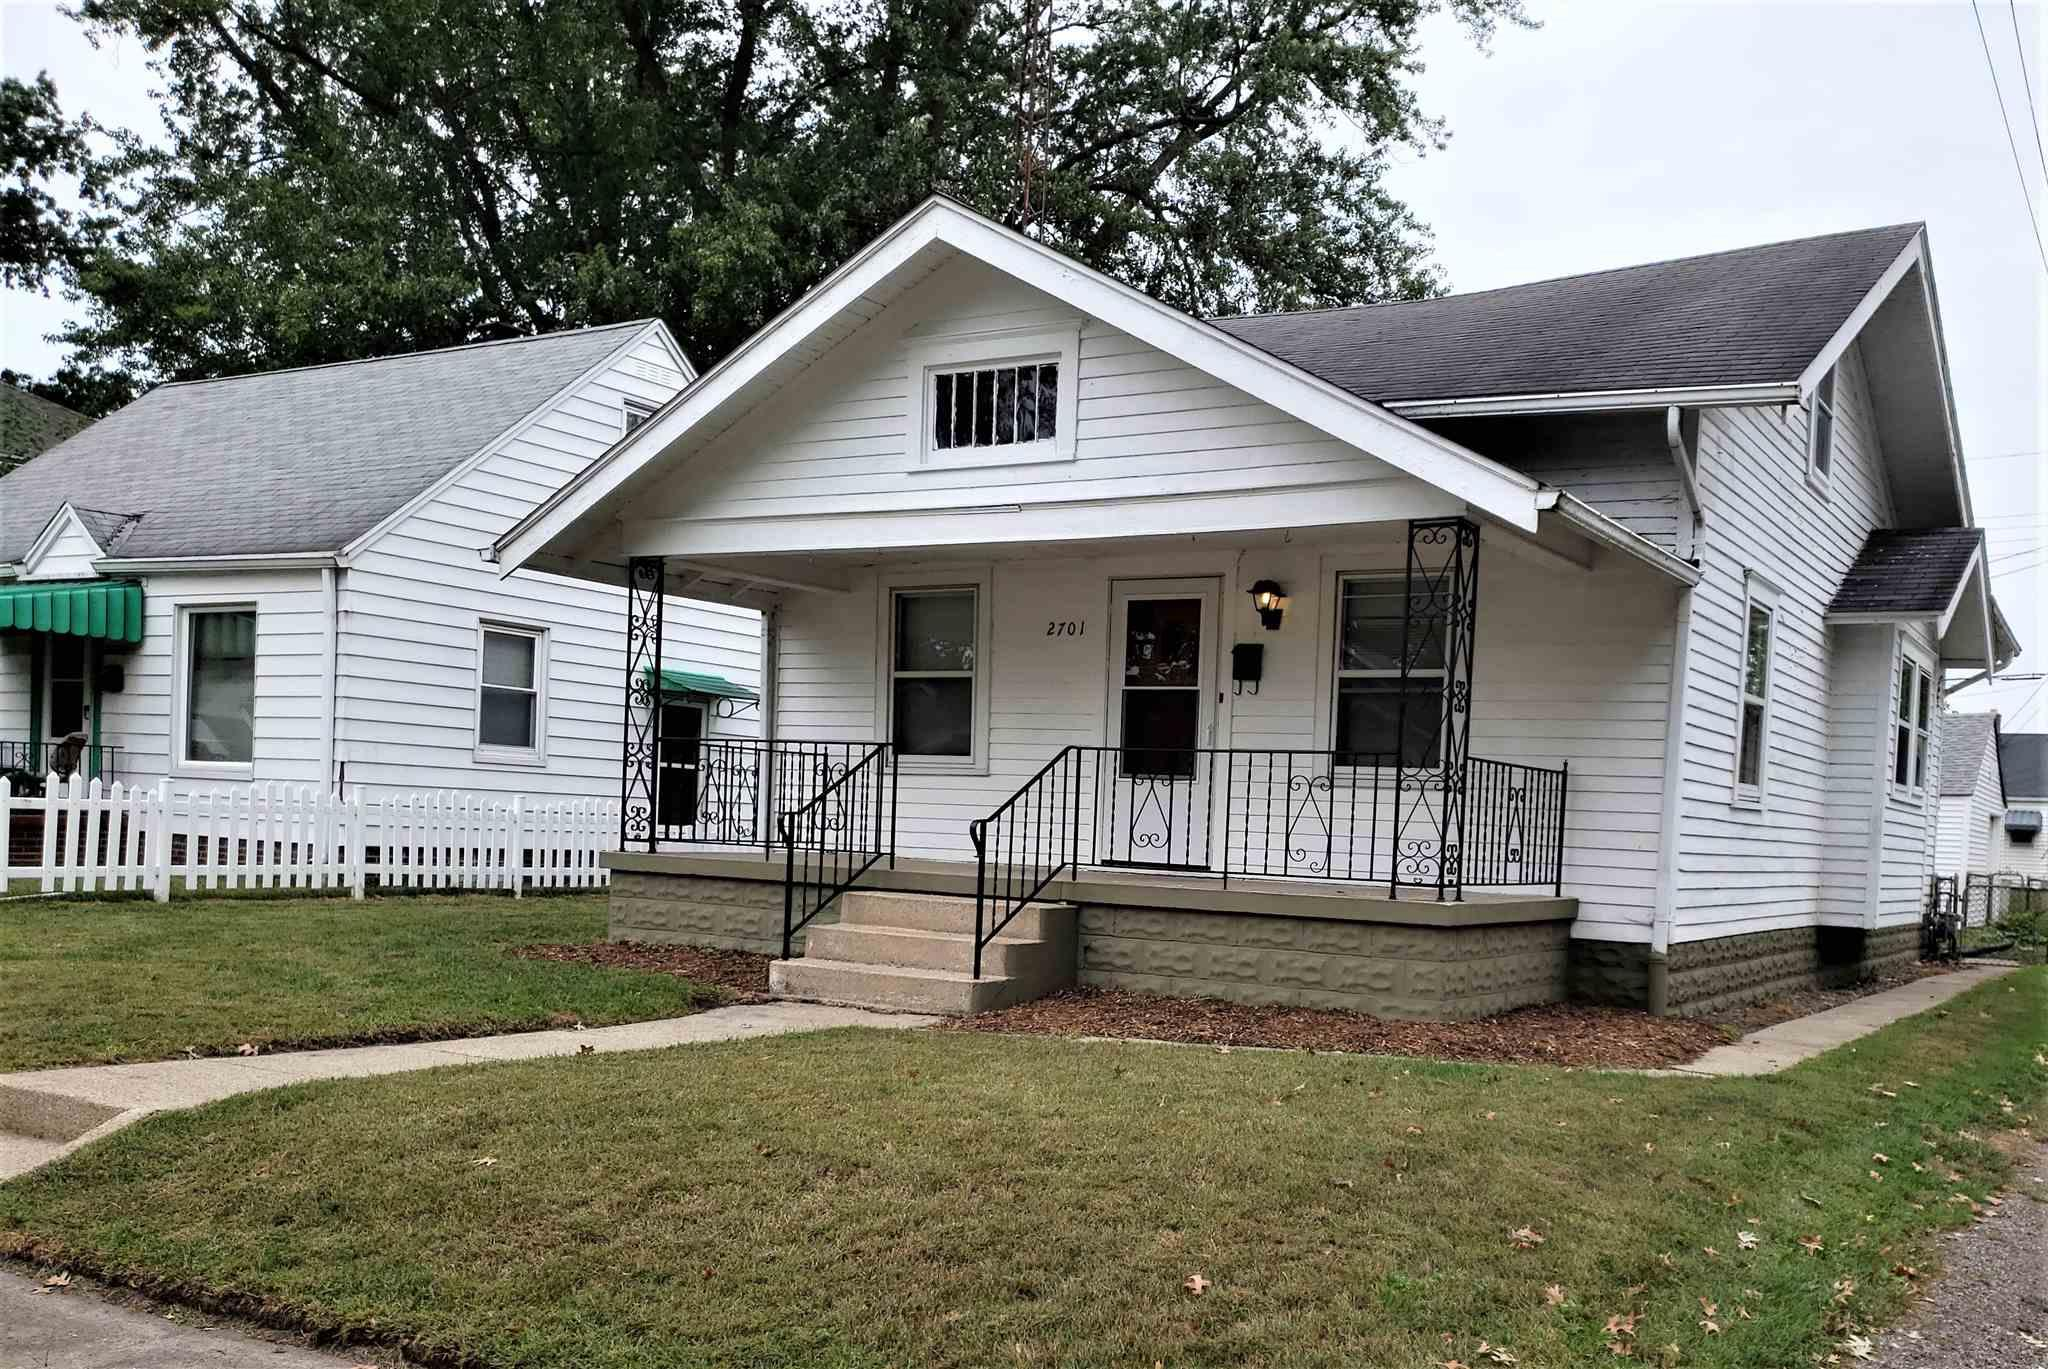 2701 Frederickson South Bend, IN 46628